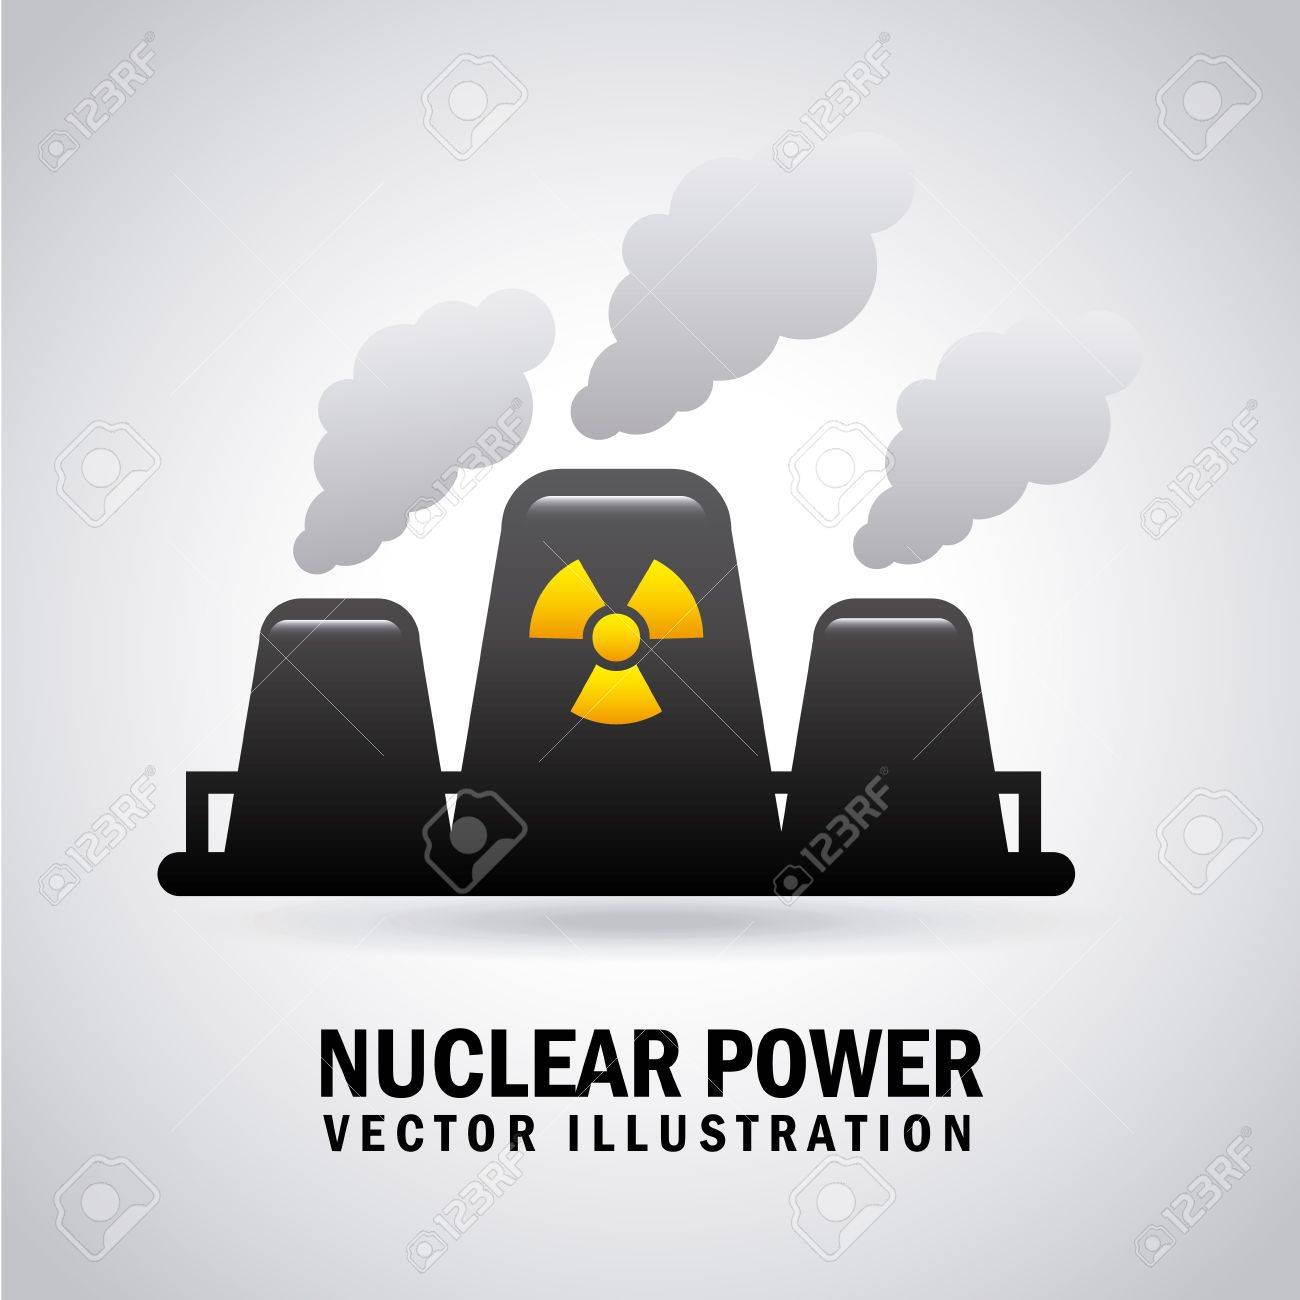 nuclear power over gray background Stock Vector - 21287181